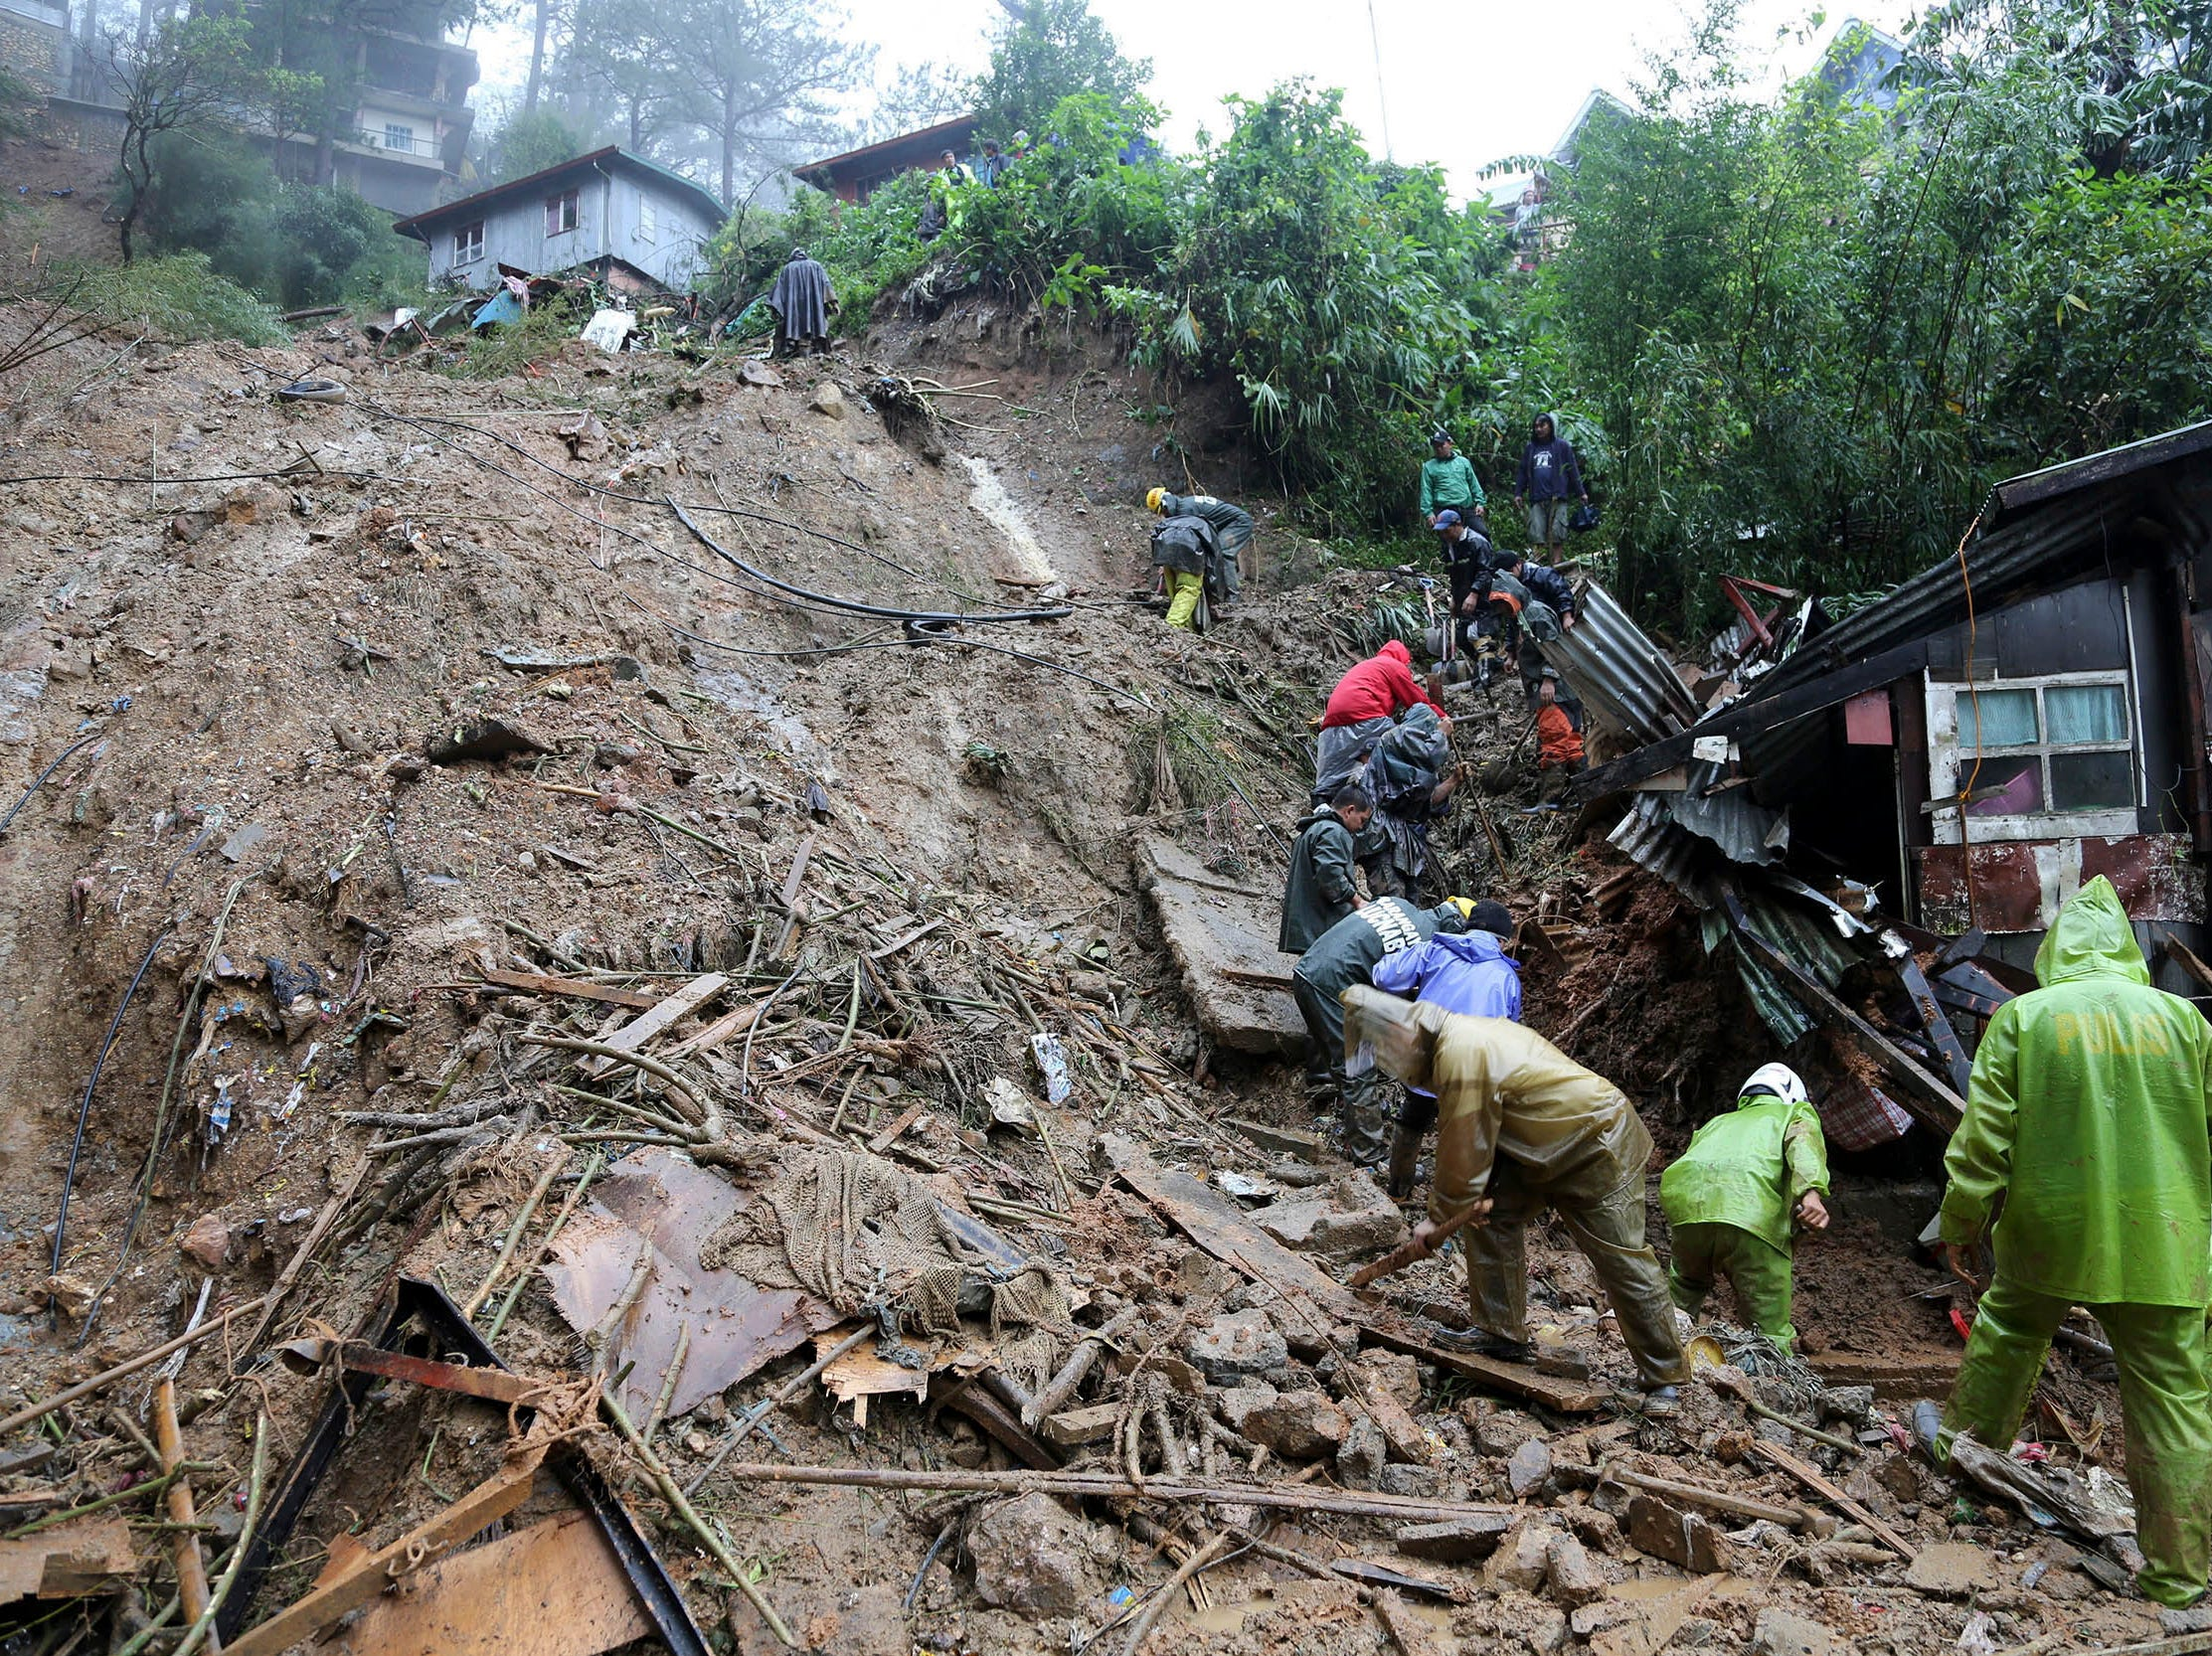 Rescuers and paramedics and volunteers conduct search and retrieval operation to locate the three missing persons who were buried due to landslide caused by typhoon Mangkhut at Balacbac, Baguio City, north of Manila, Philippines on Sept. 16, 2018.